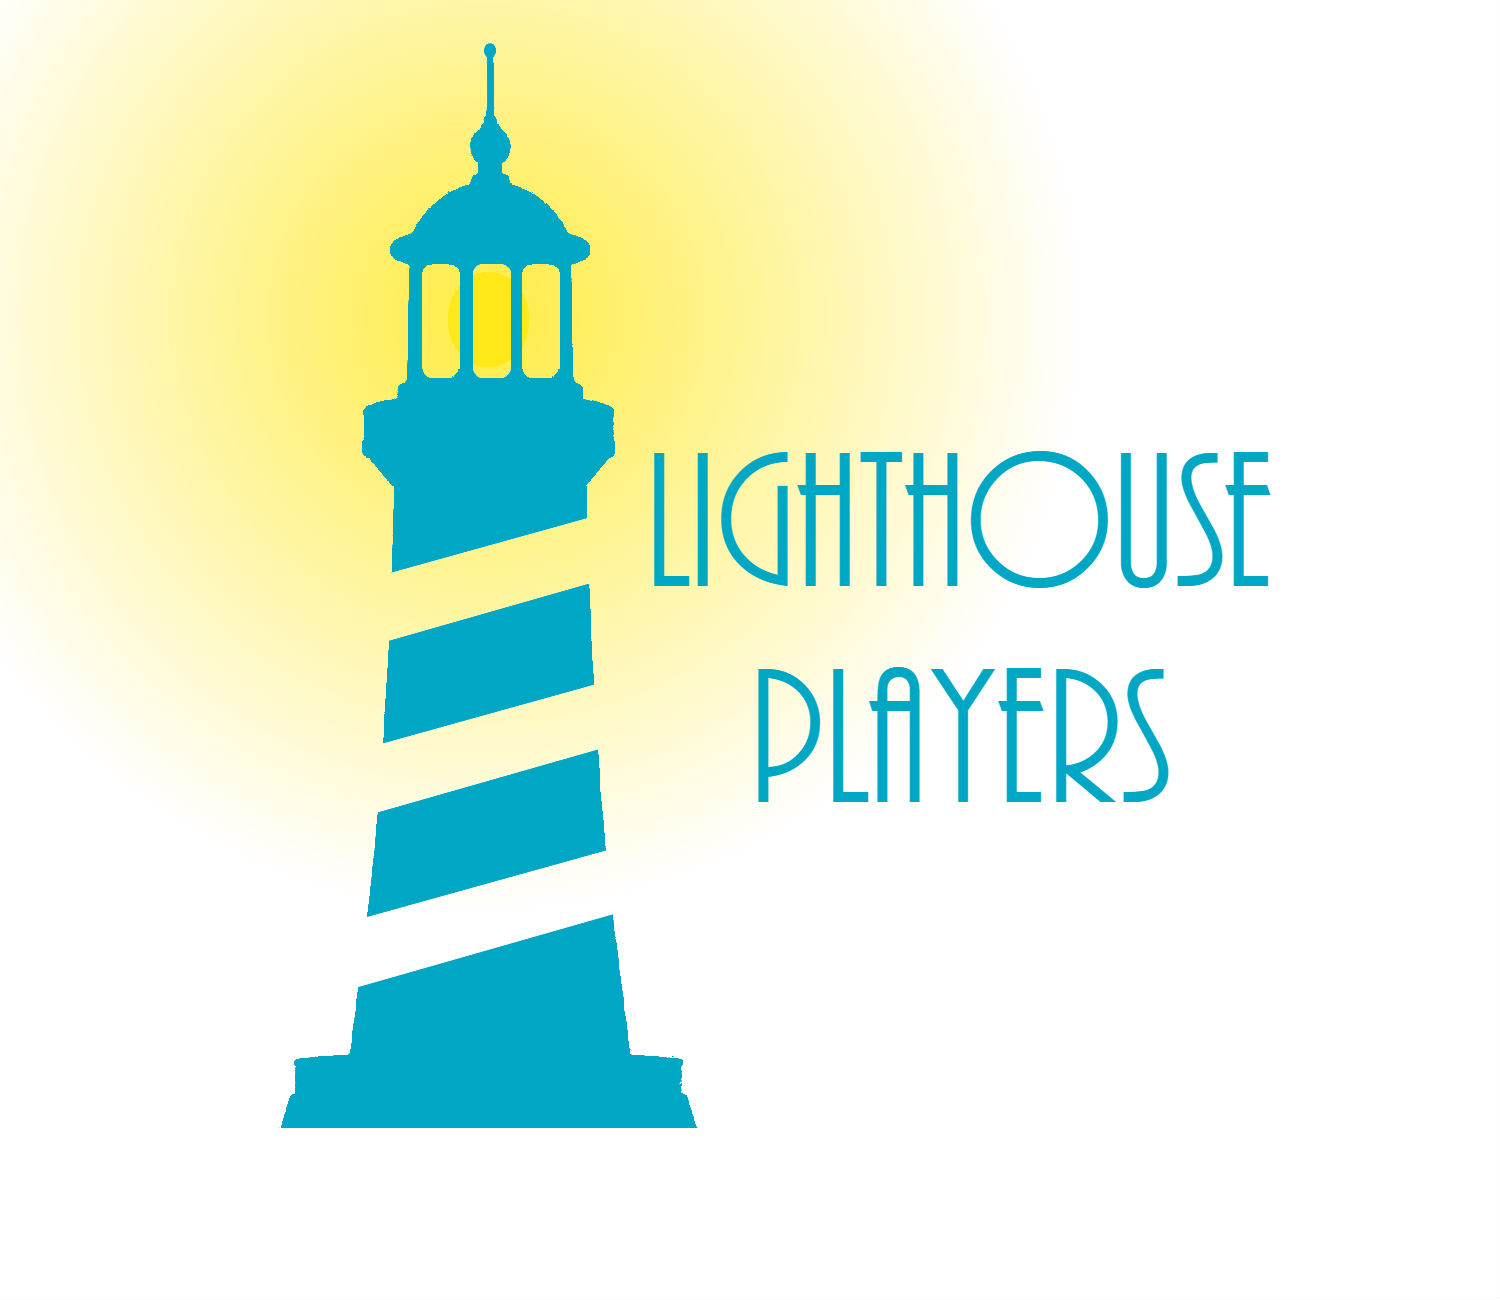 Lighthouse Players